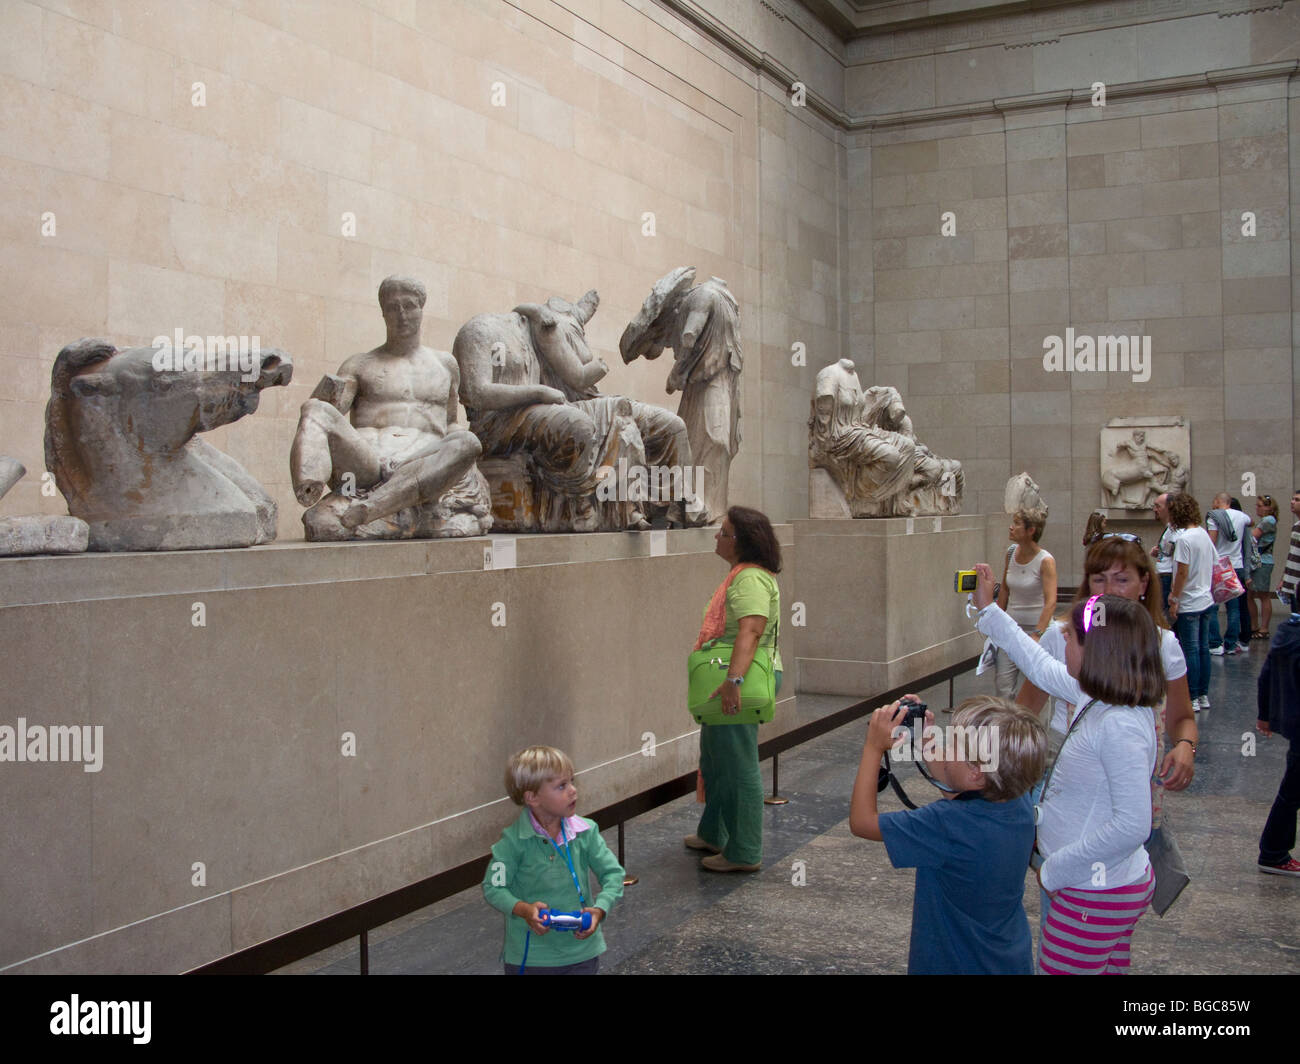 Children taking photo's of Statuary from the East Pediment of the Elgin Marbles, British Museum, London Stock Photo